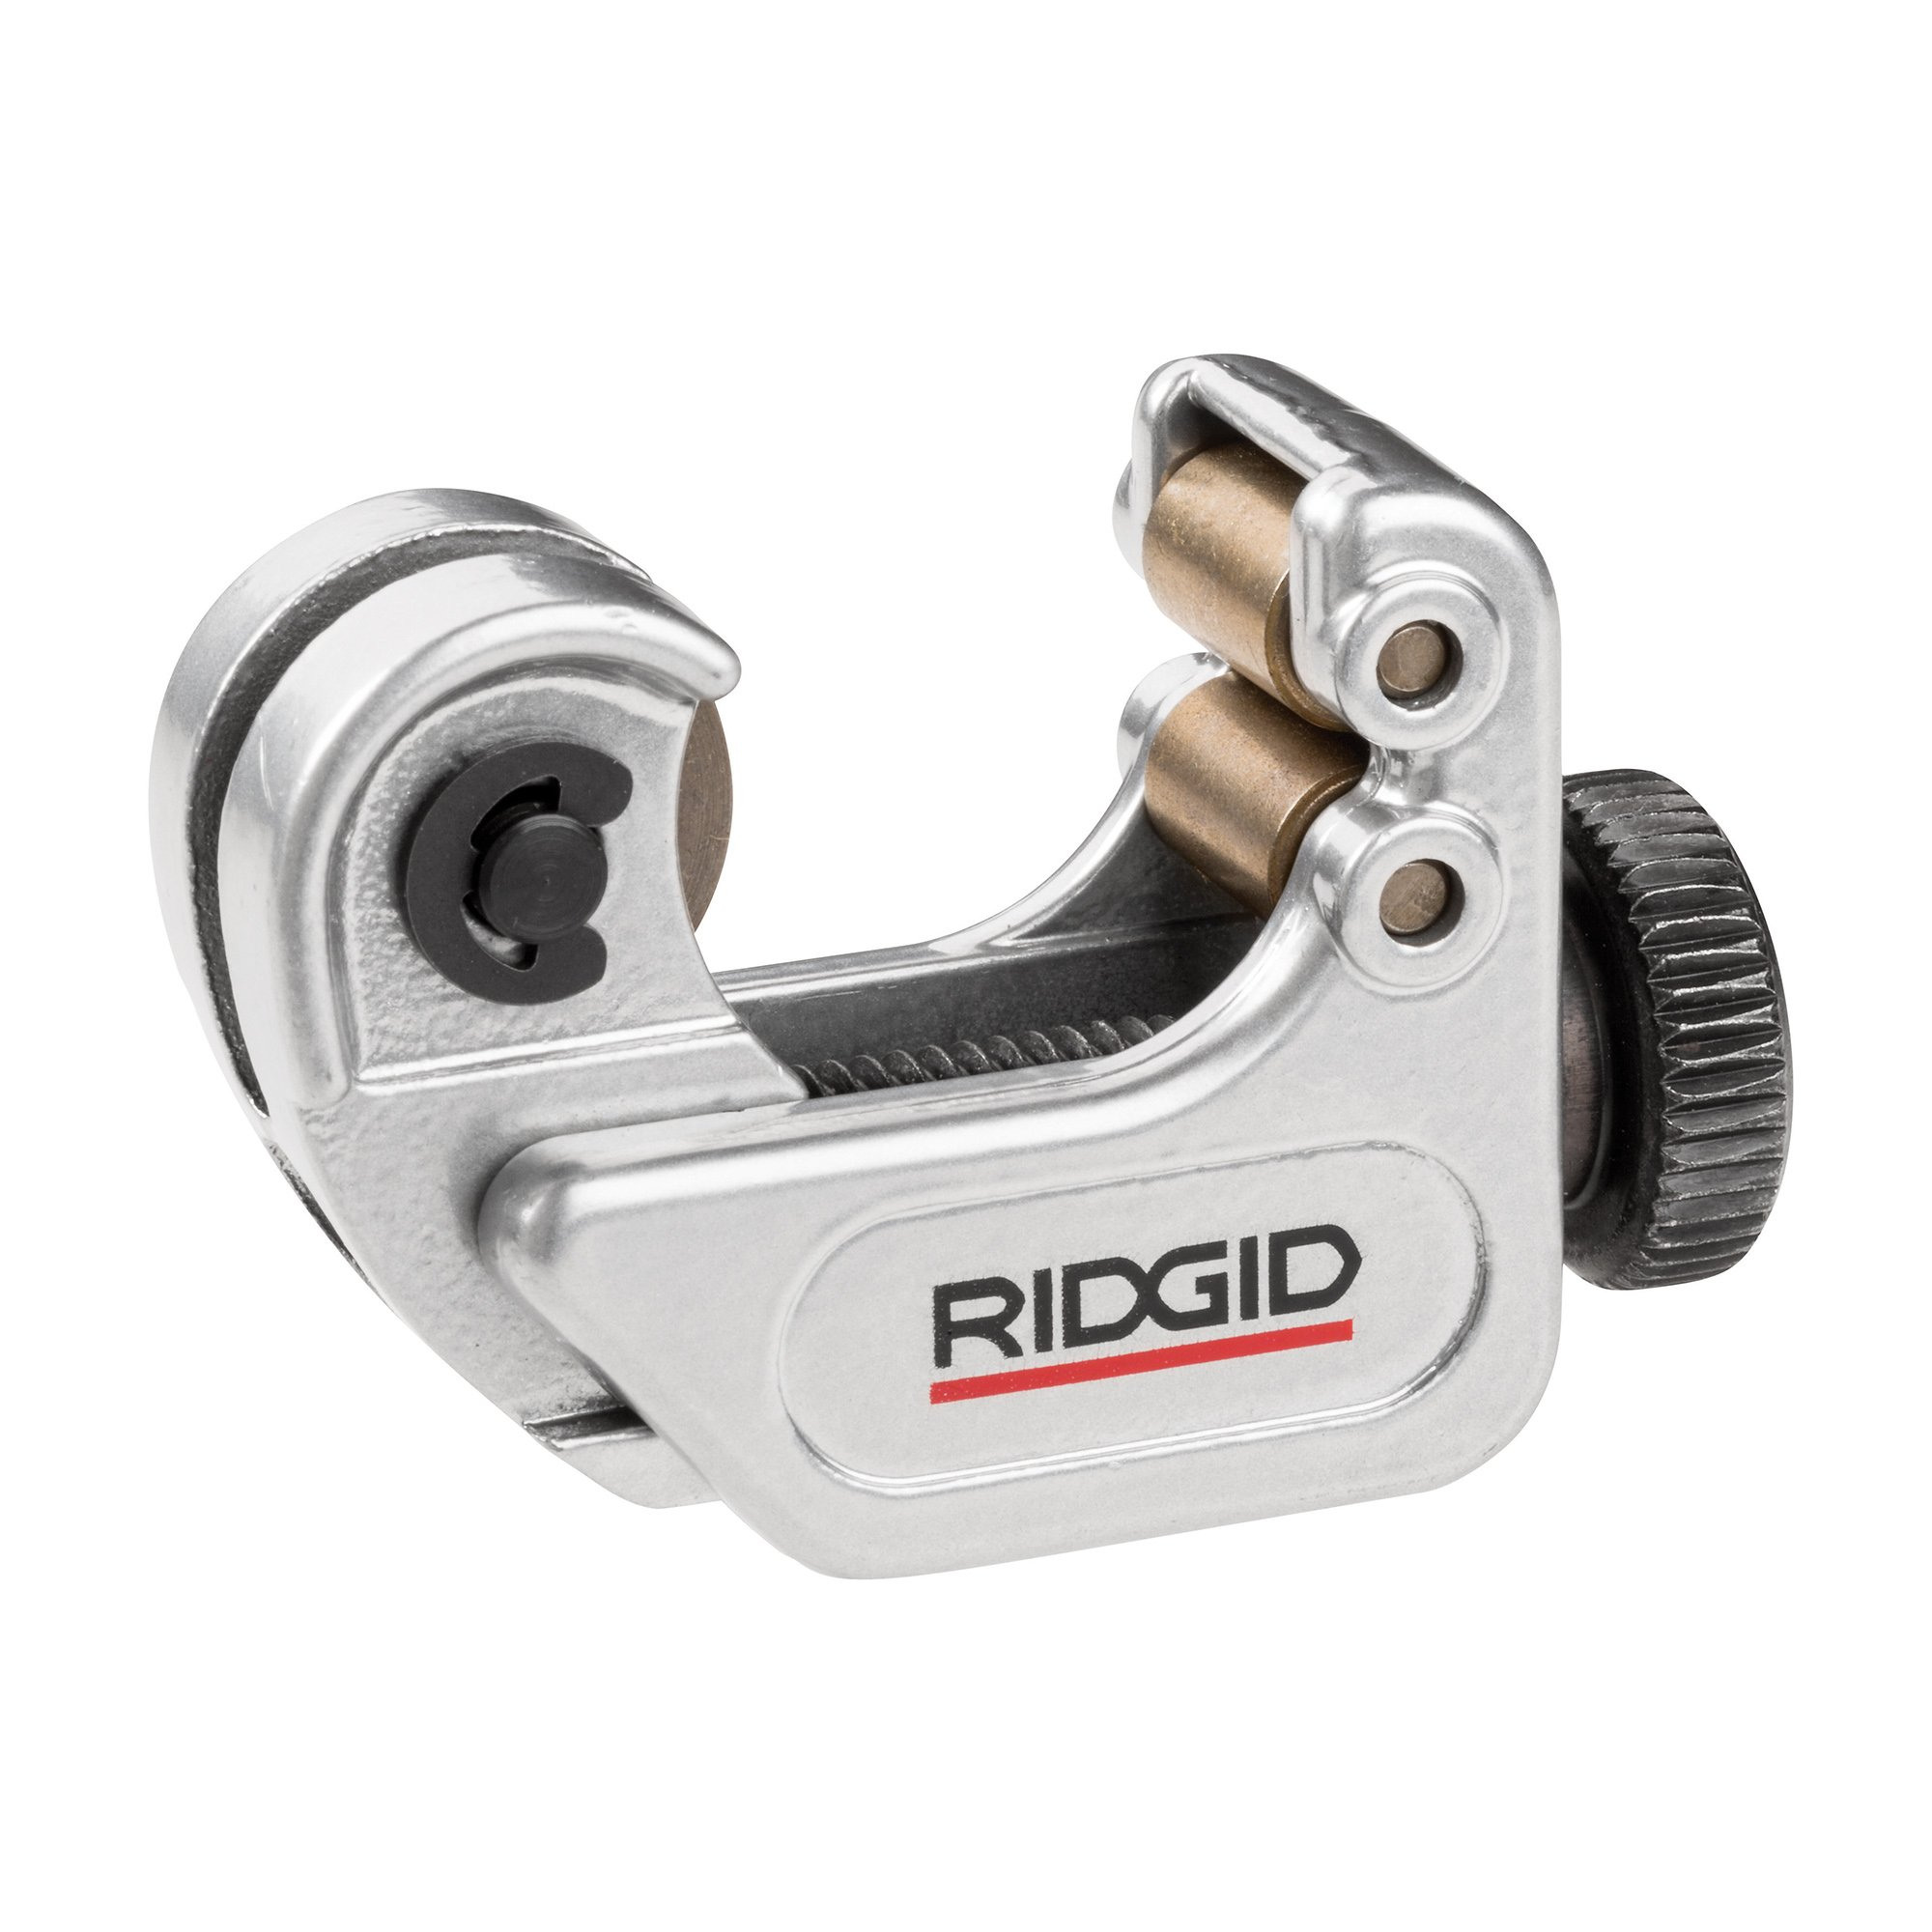 RIDGID 32975 Model 103 Close Quarters Tubing Cutter, 1/8-inch to 5/8-inch Tube Cutter by Ridgid (Image #1)